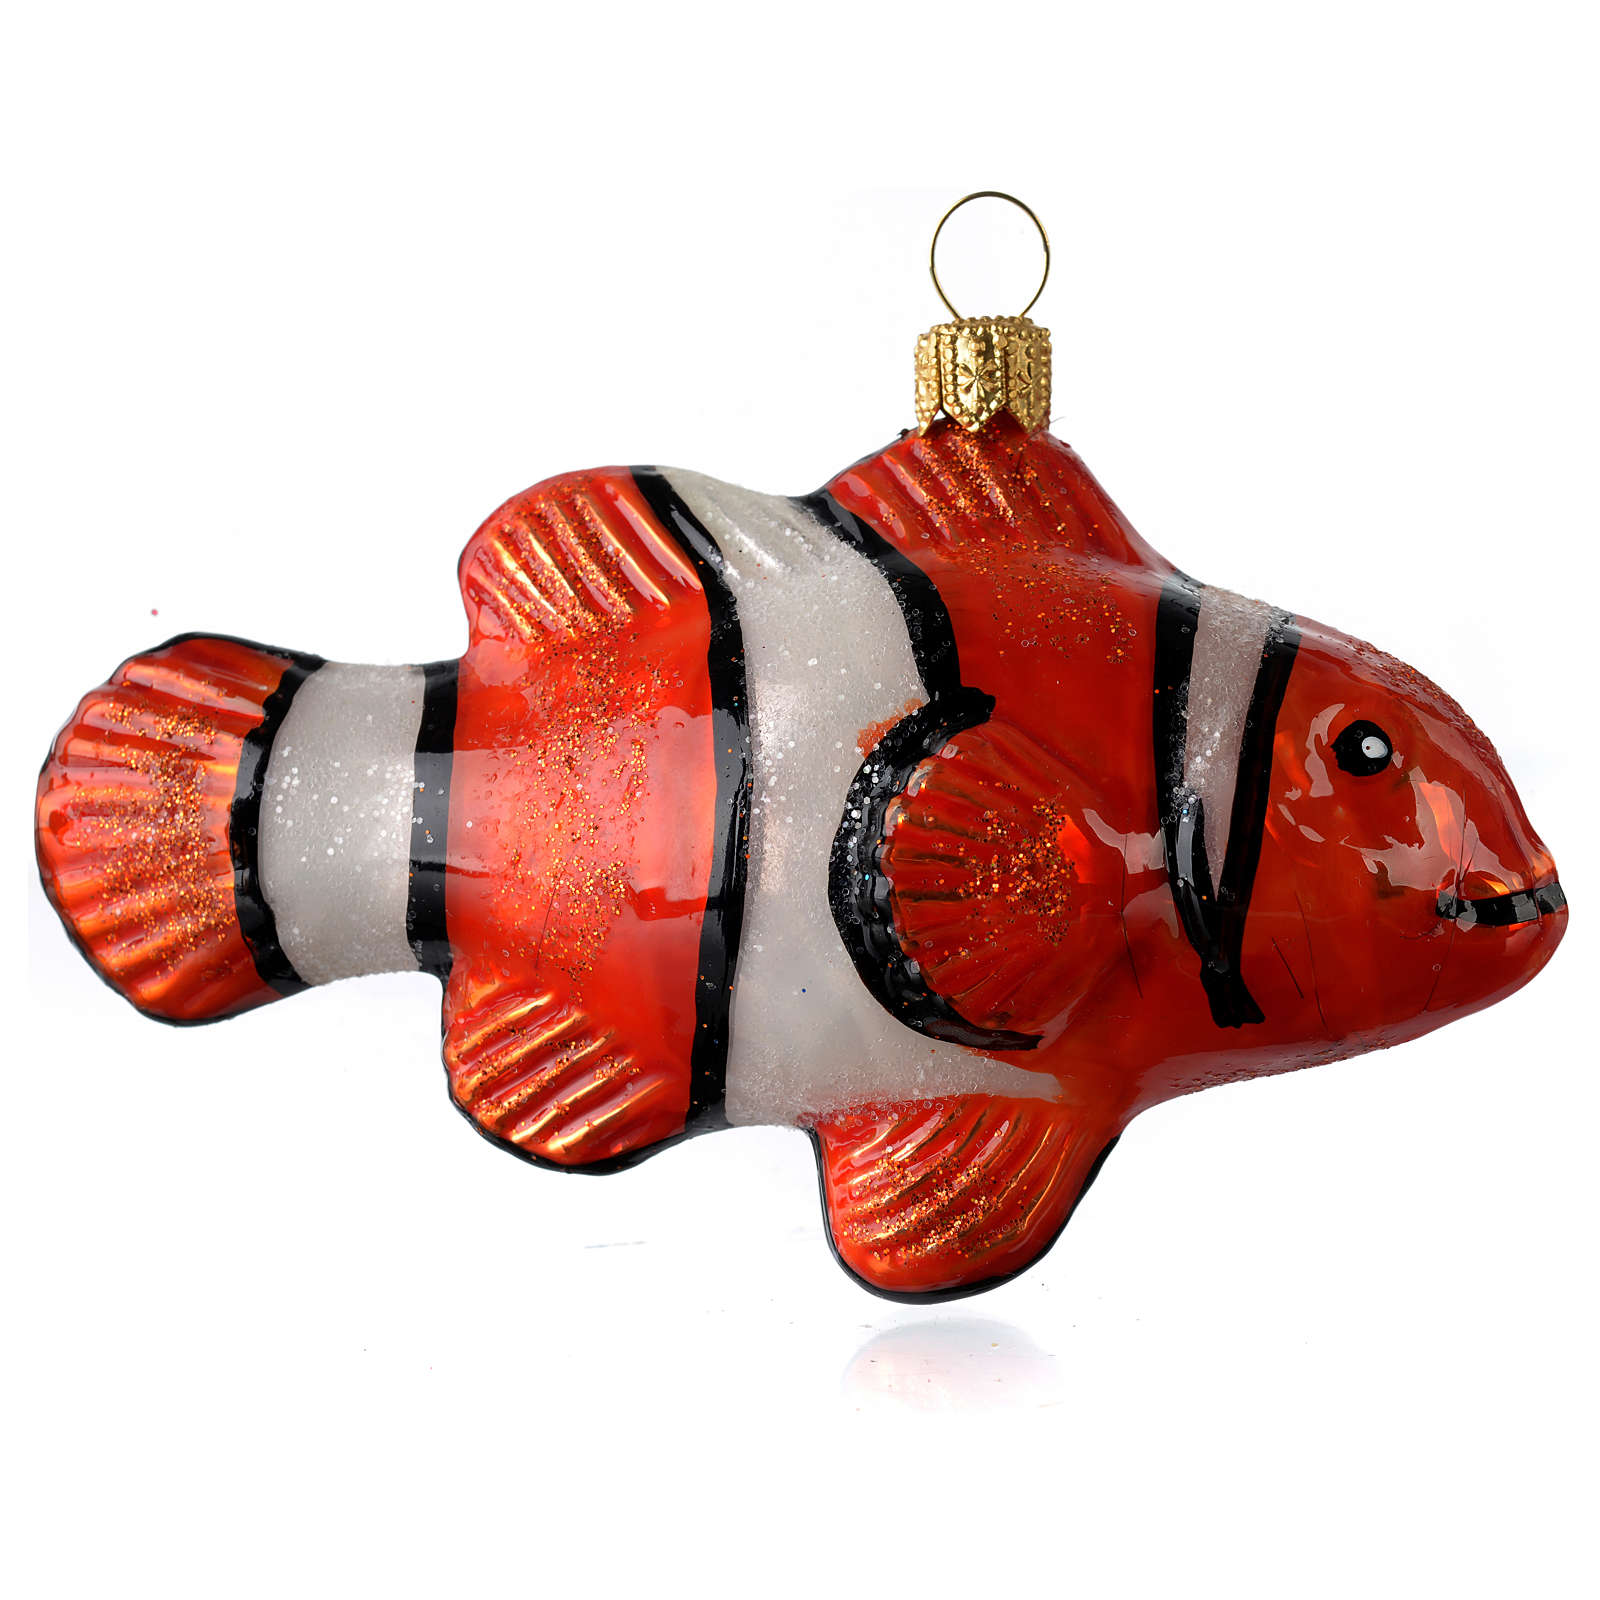 Blown glass Christmas ornament, clownfish 4